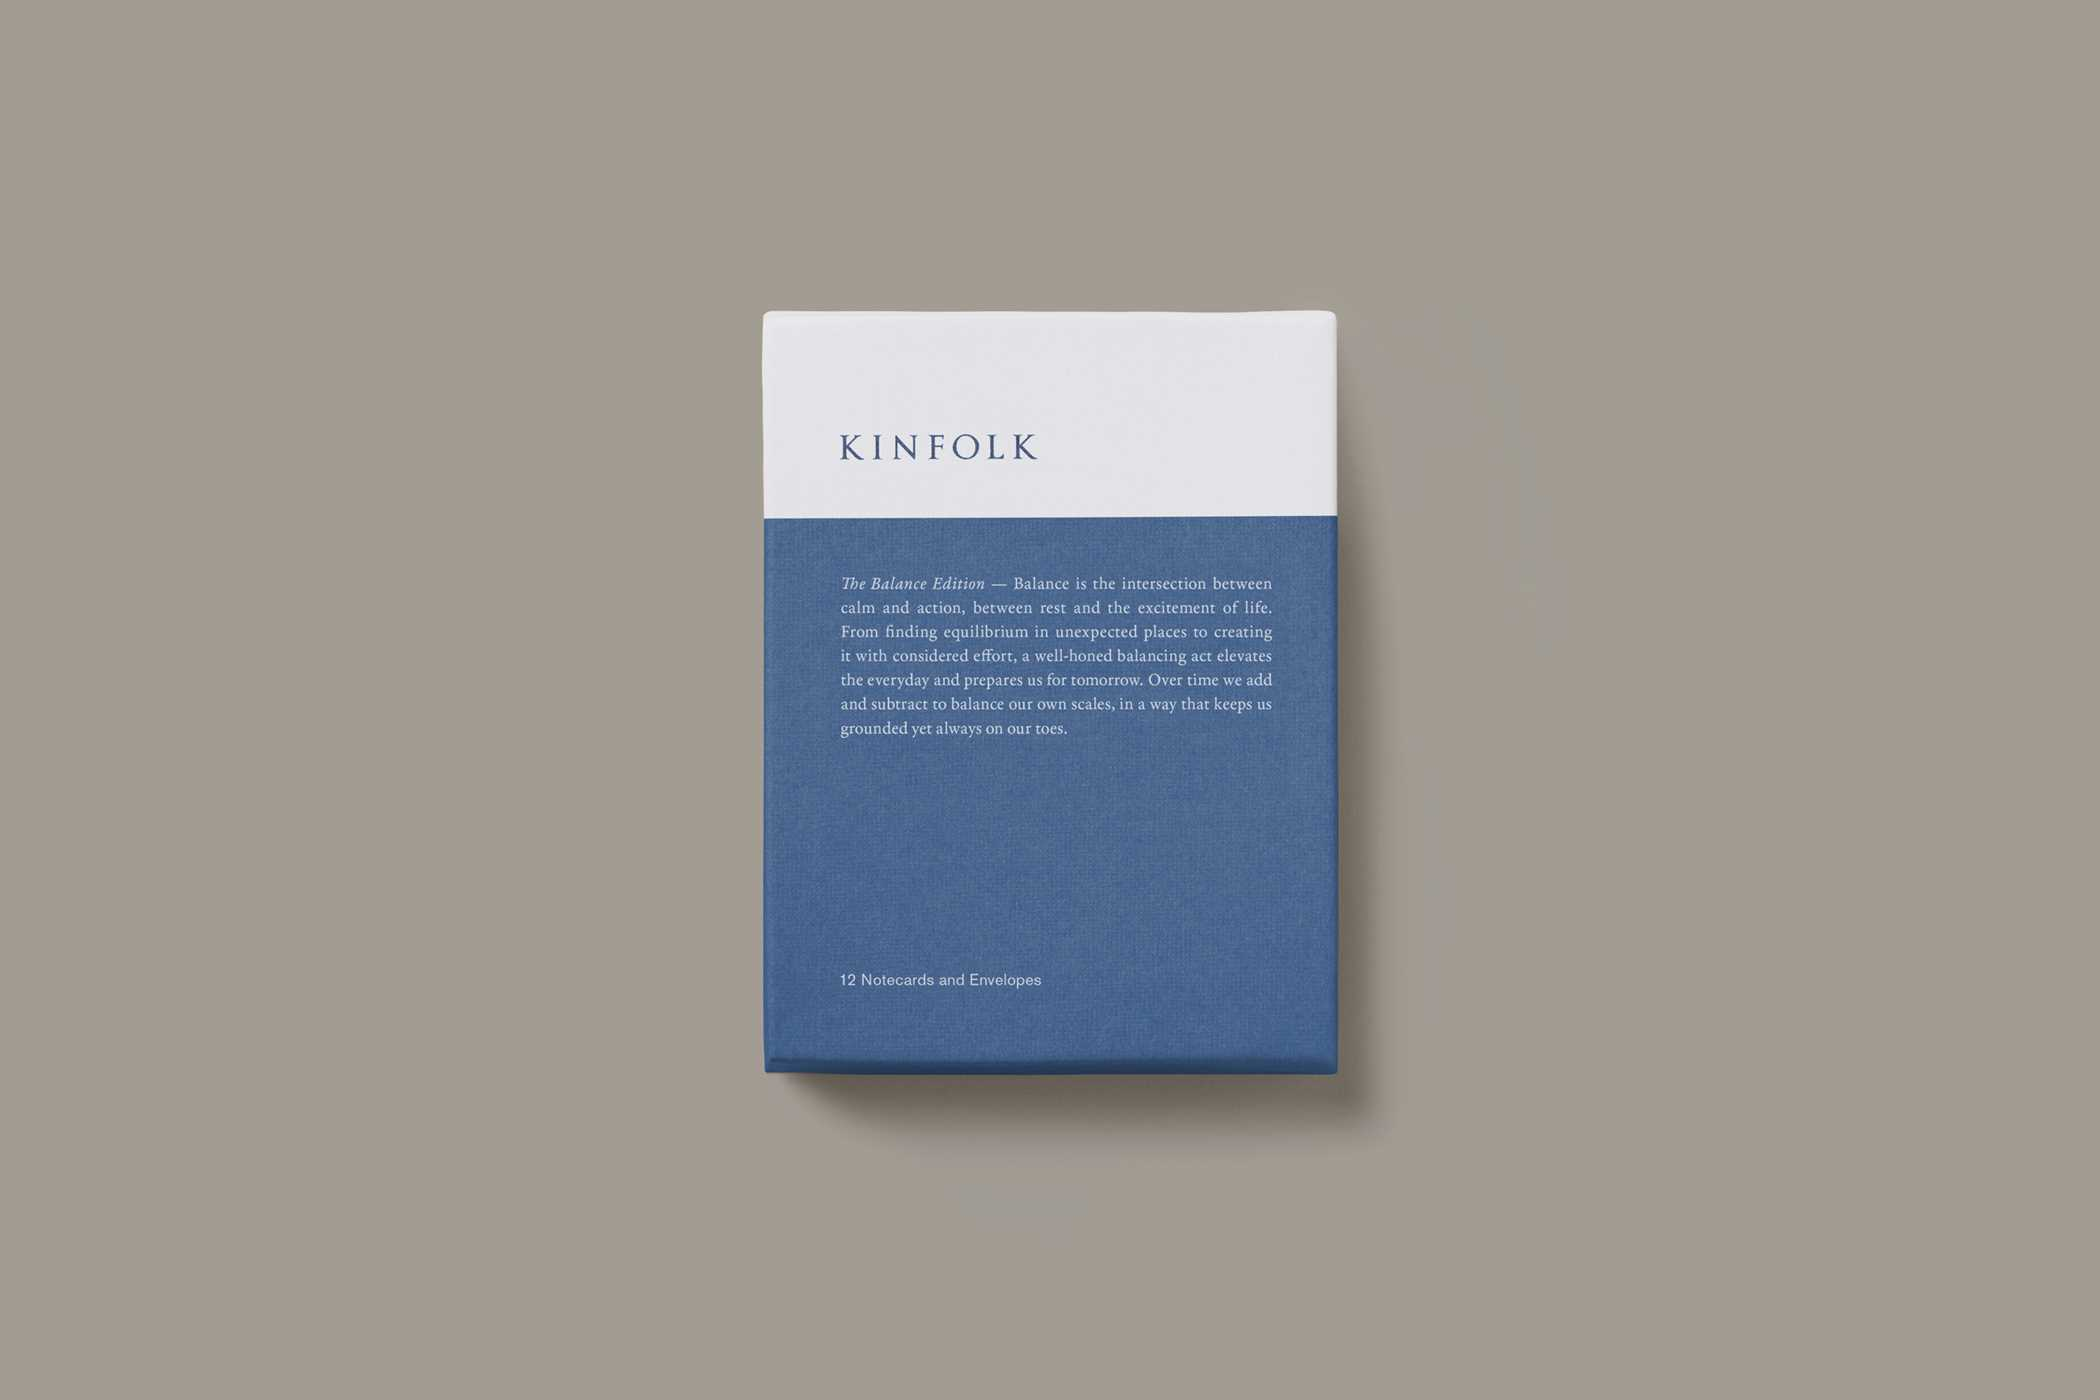 Kinfolk notecards the balance edition 9781941815212 hr